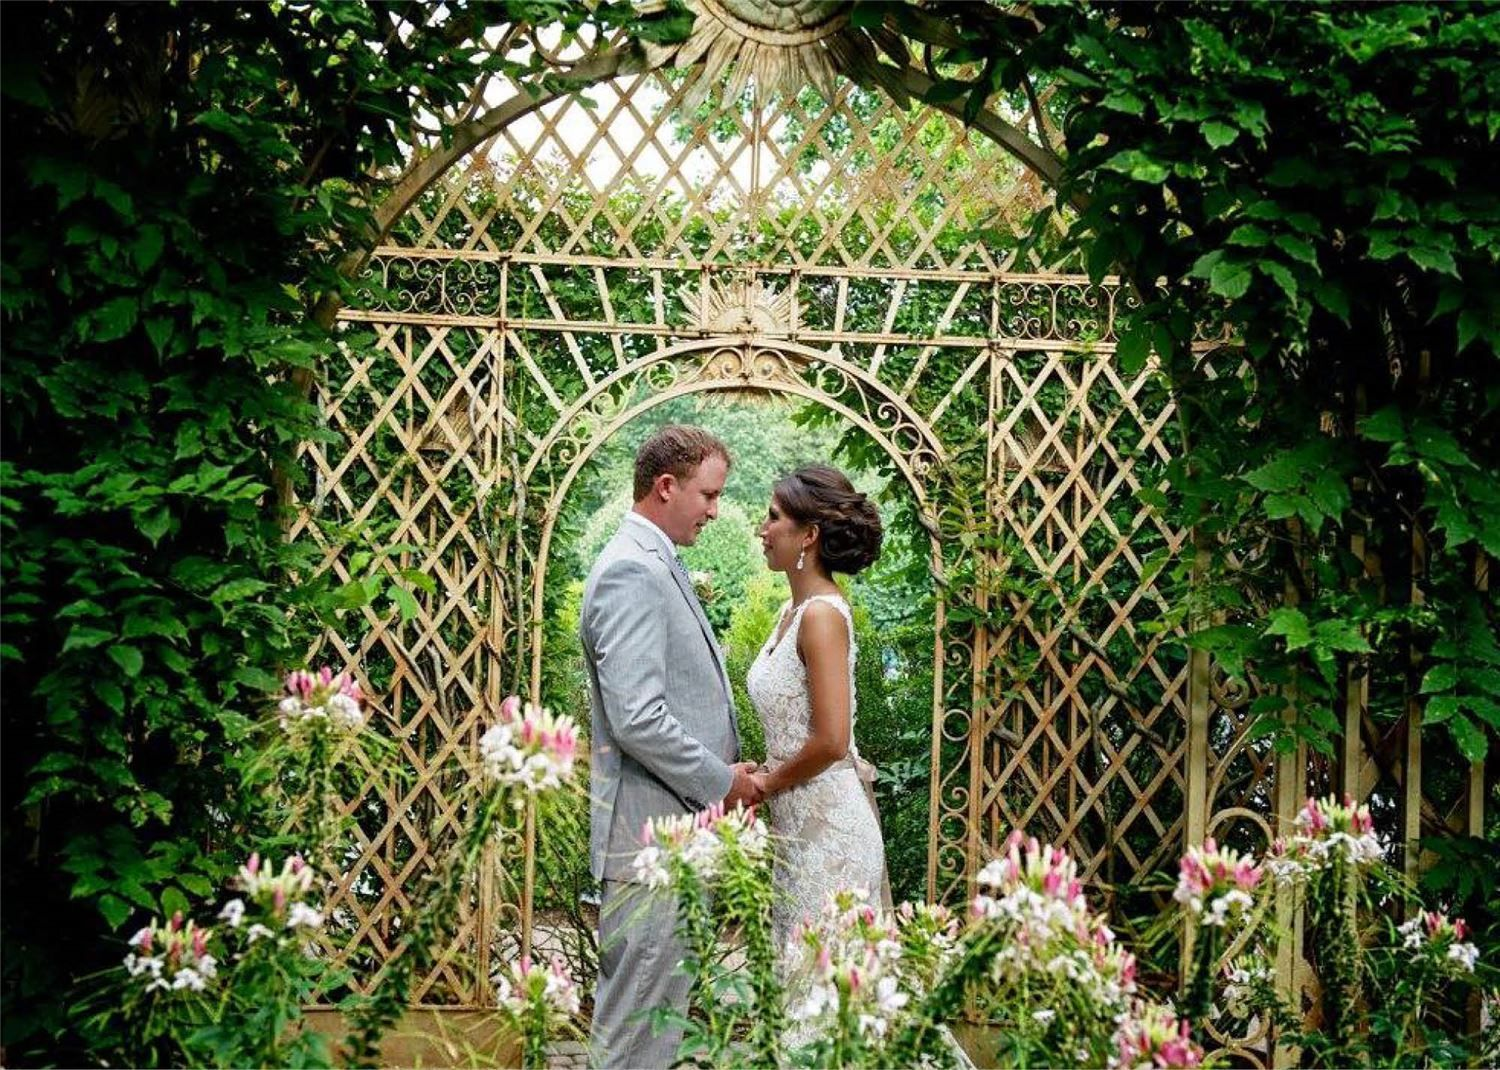 The Watermill Smithtown And Other Beautiful Long Island Wedding Venues Detailed Info Prices Photos For NY Garden Reception Locations